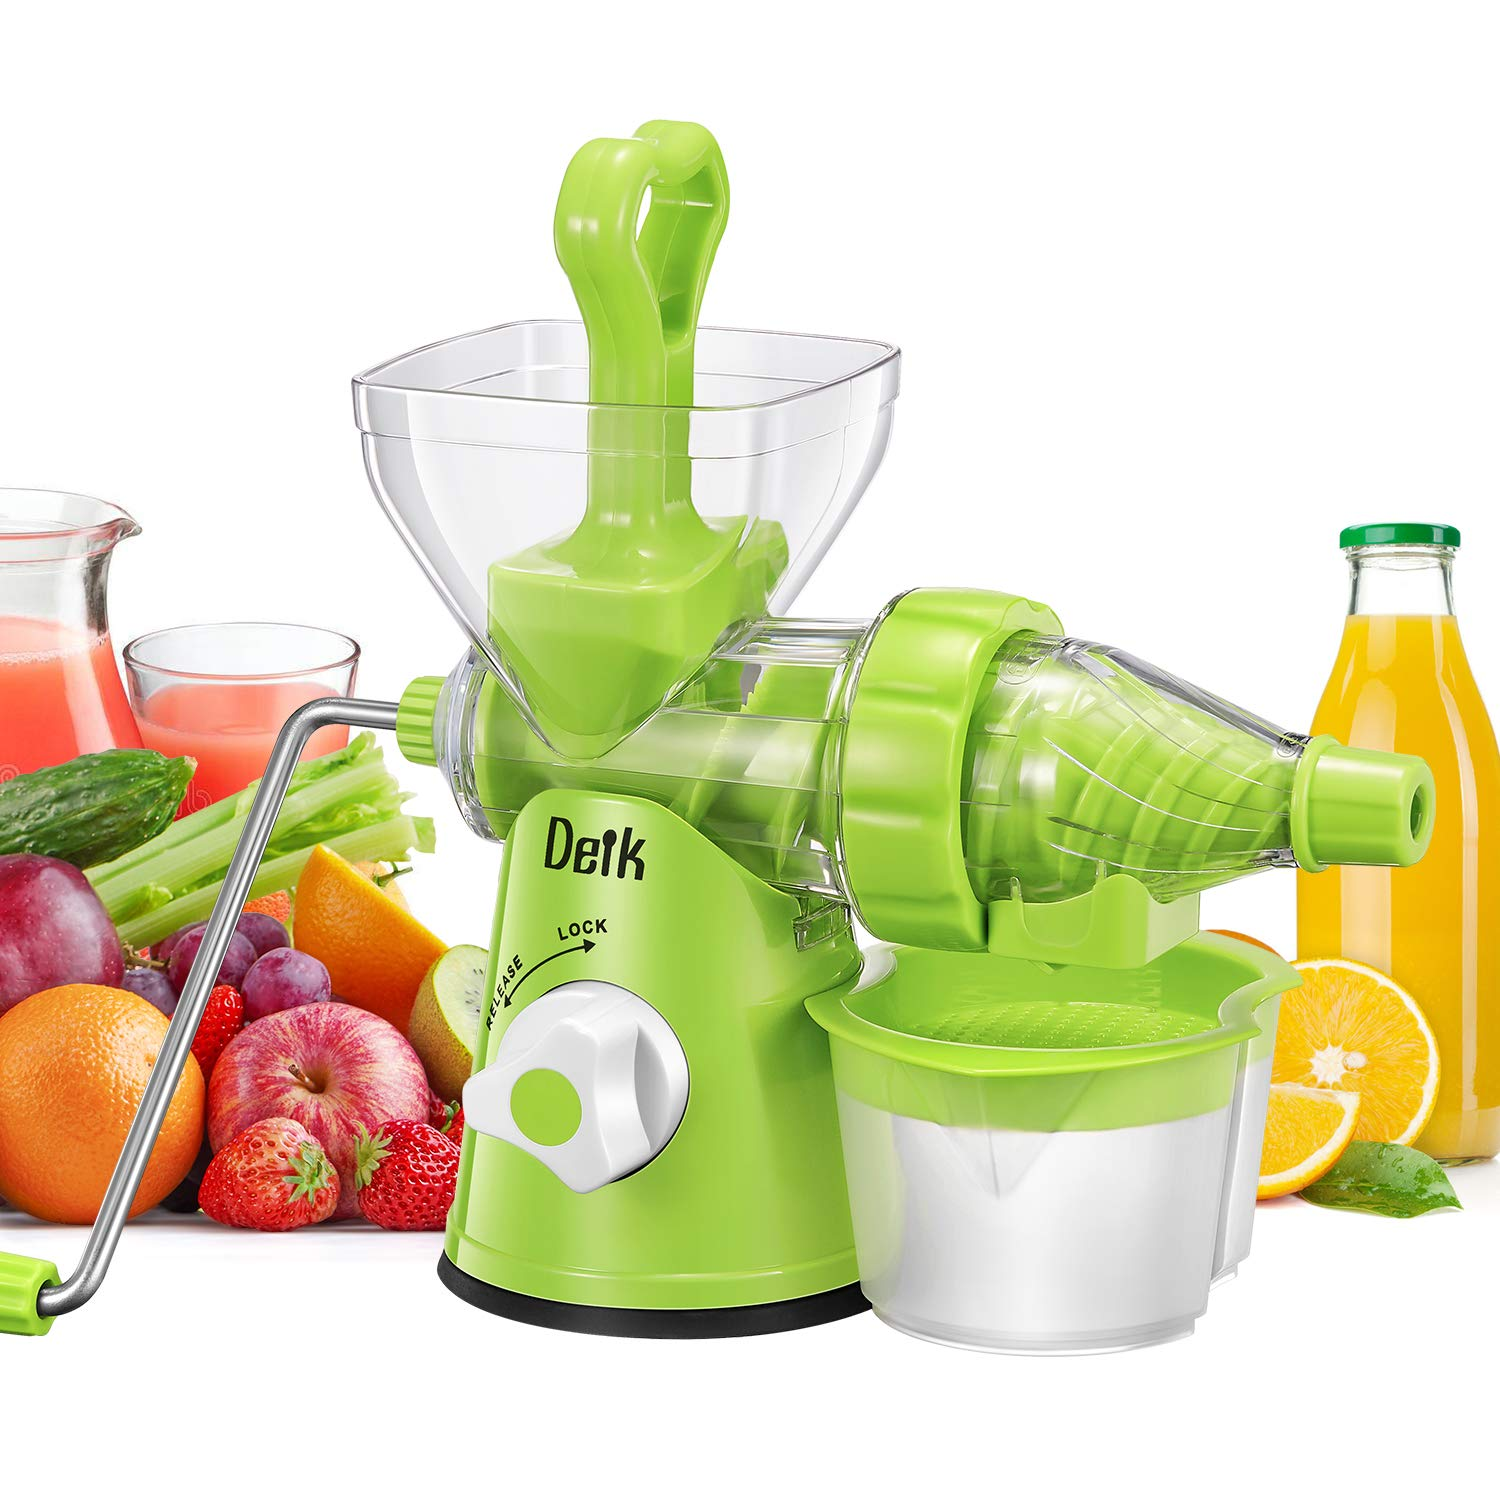 DEIK Manual Juicer, Juicer Machine for Maximum Nutrition Value, Hand Cold Press Original Healthy Juicer for Fruits and Vegetables by Deik